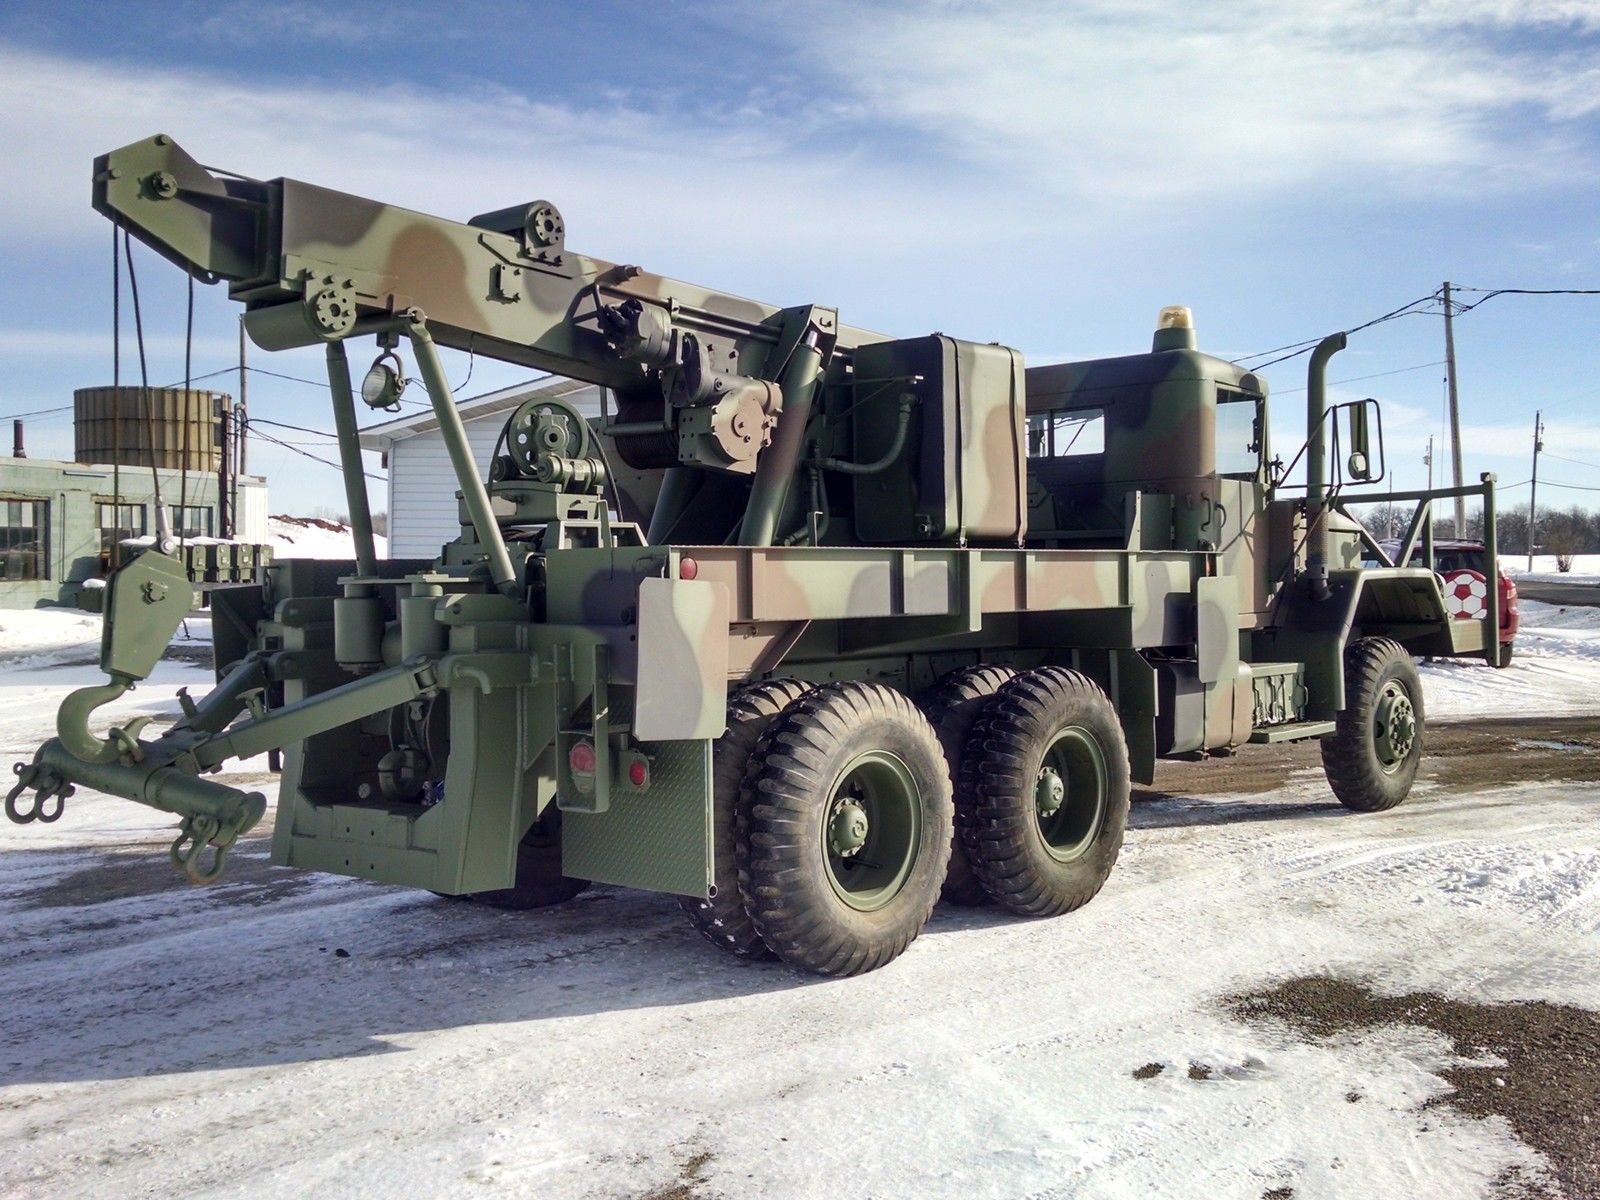 BangShift There s an M816 6x6 Recovery Vehicle for sale on eBay